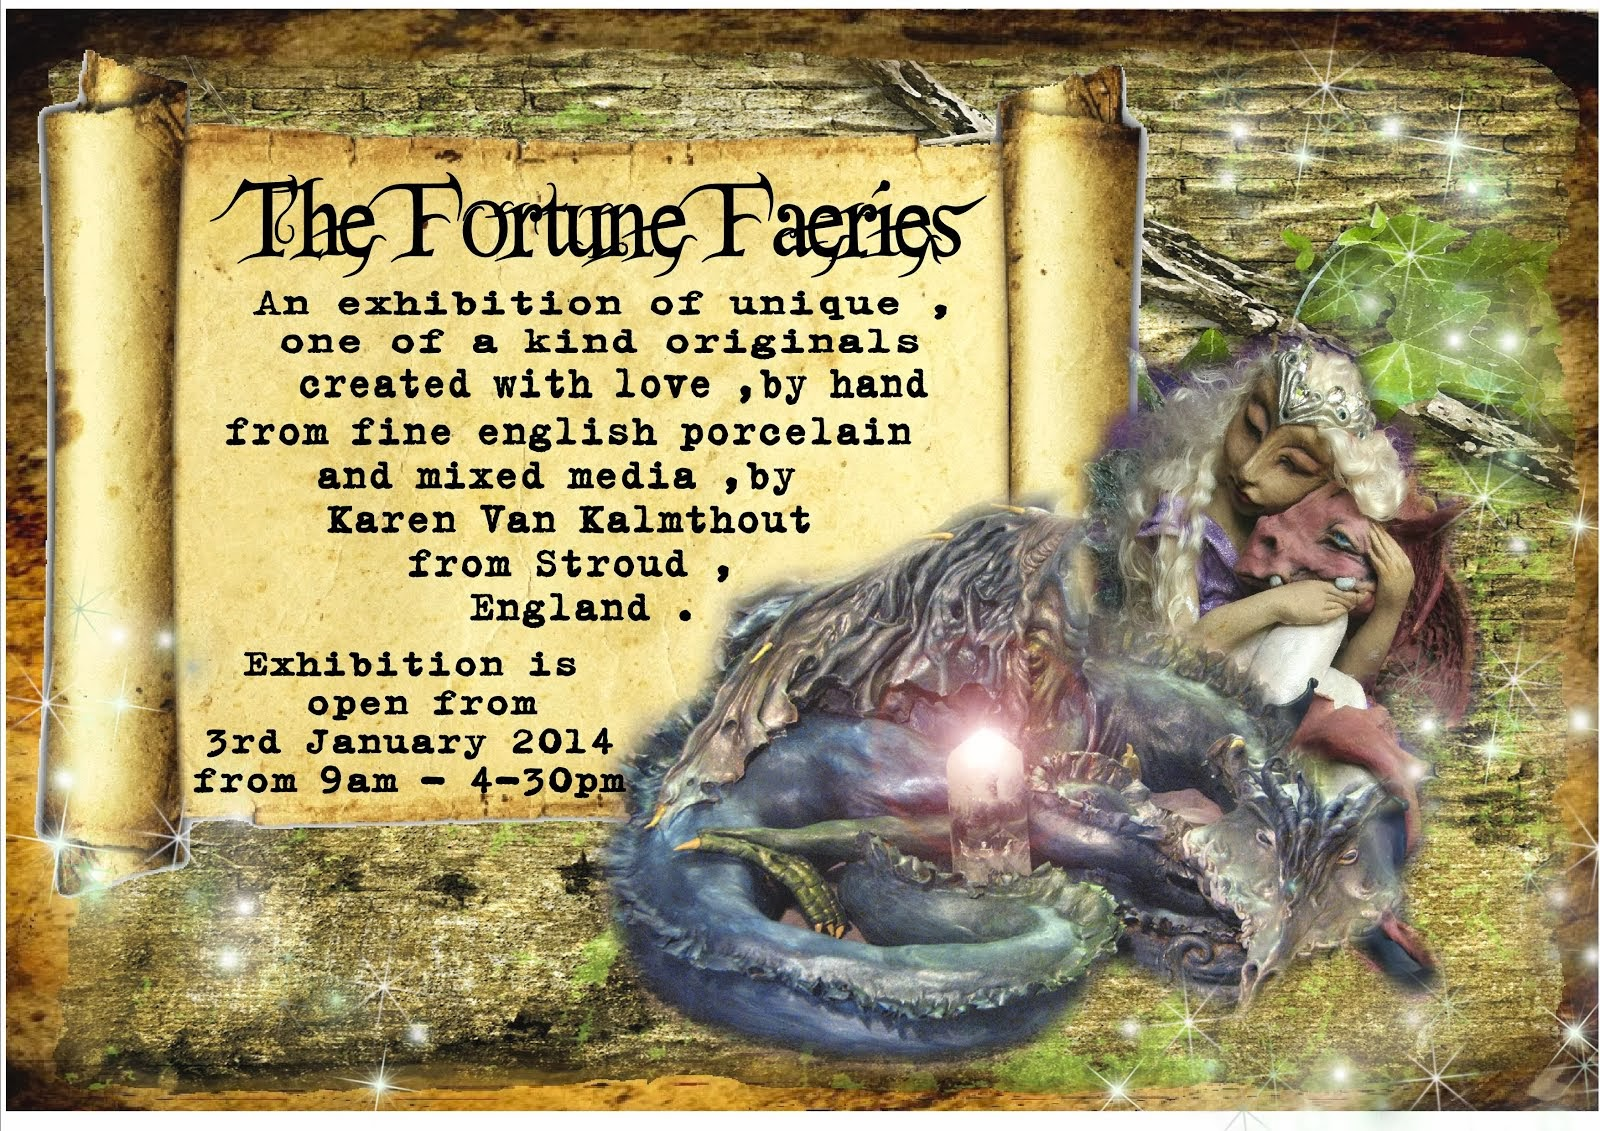 THE FORTUNE FAERIES EXHIBITION